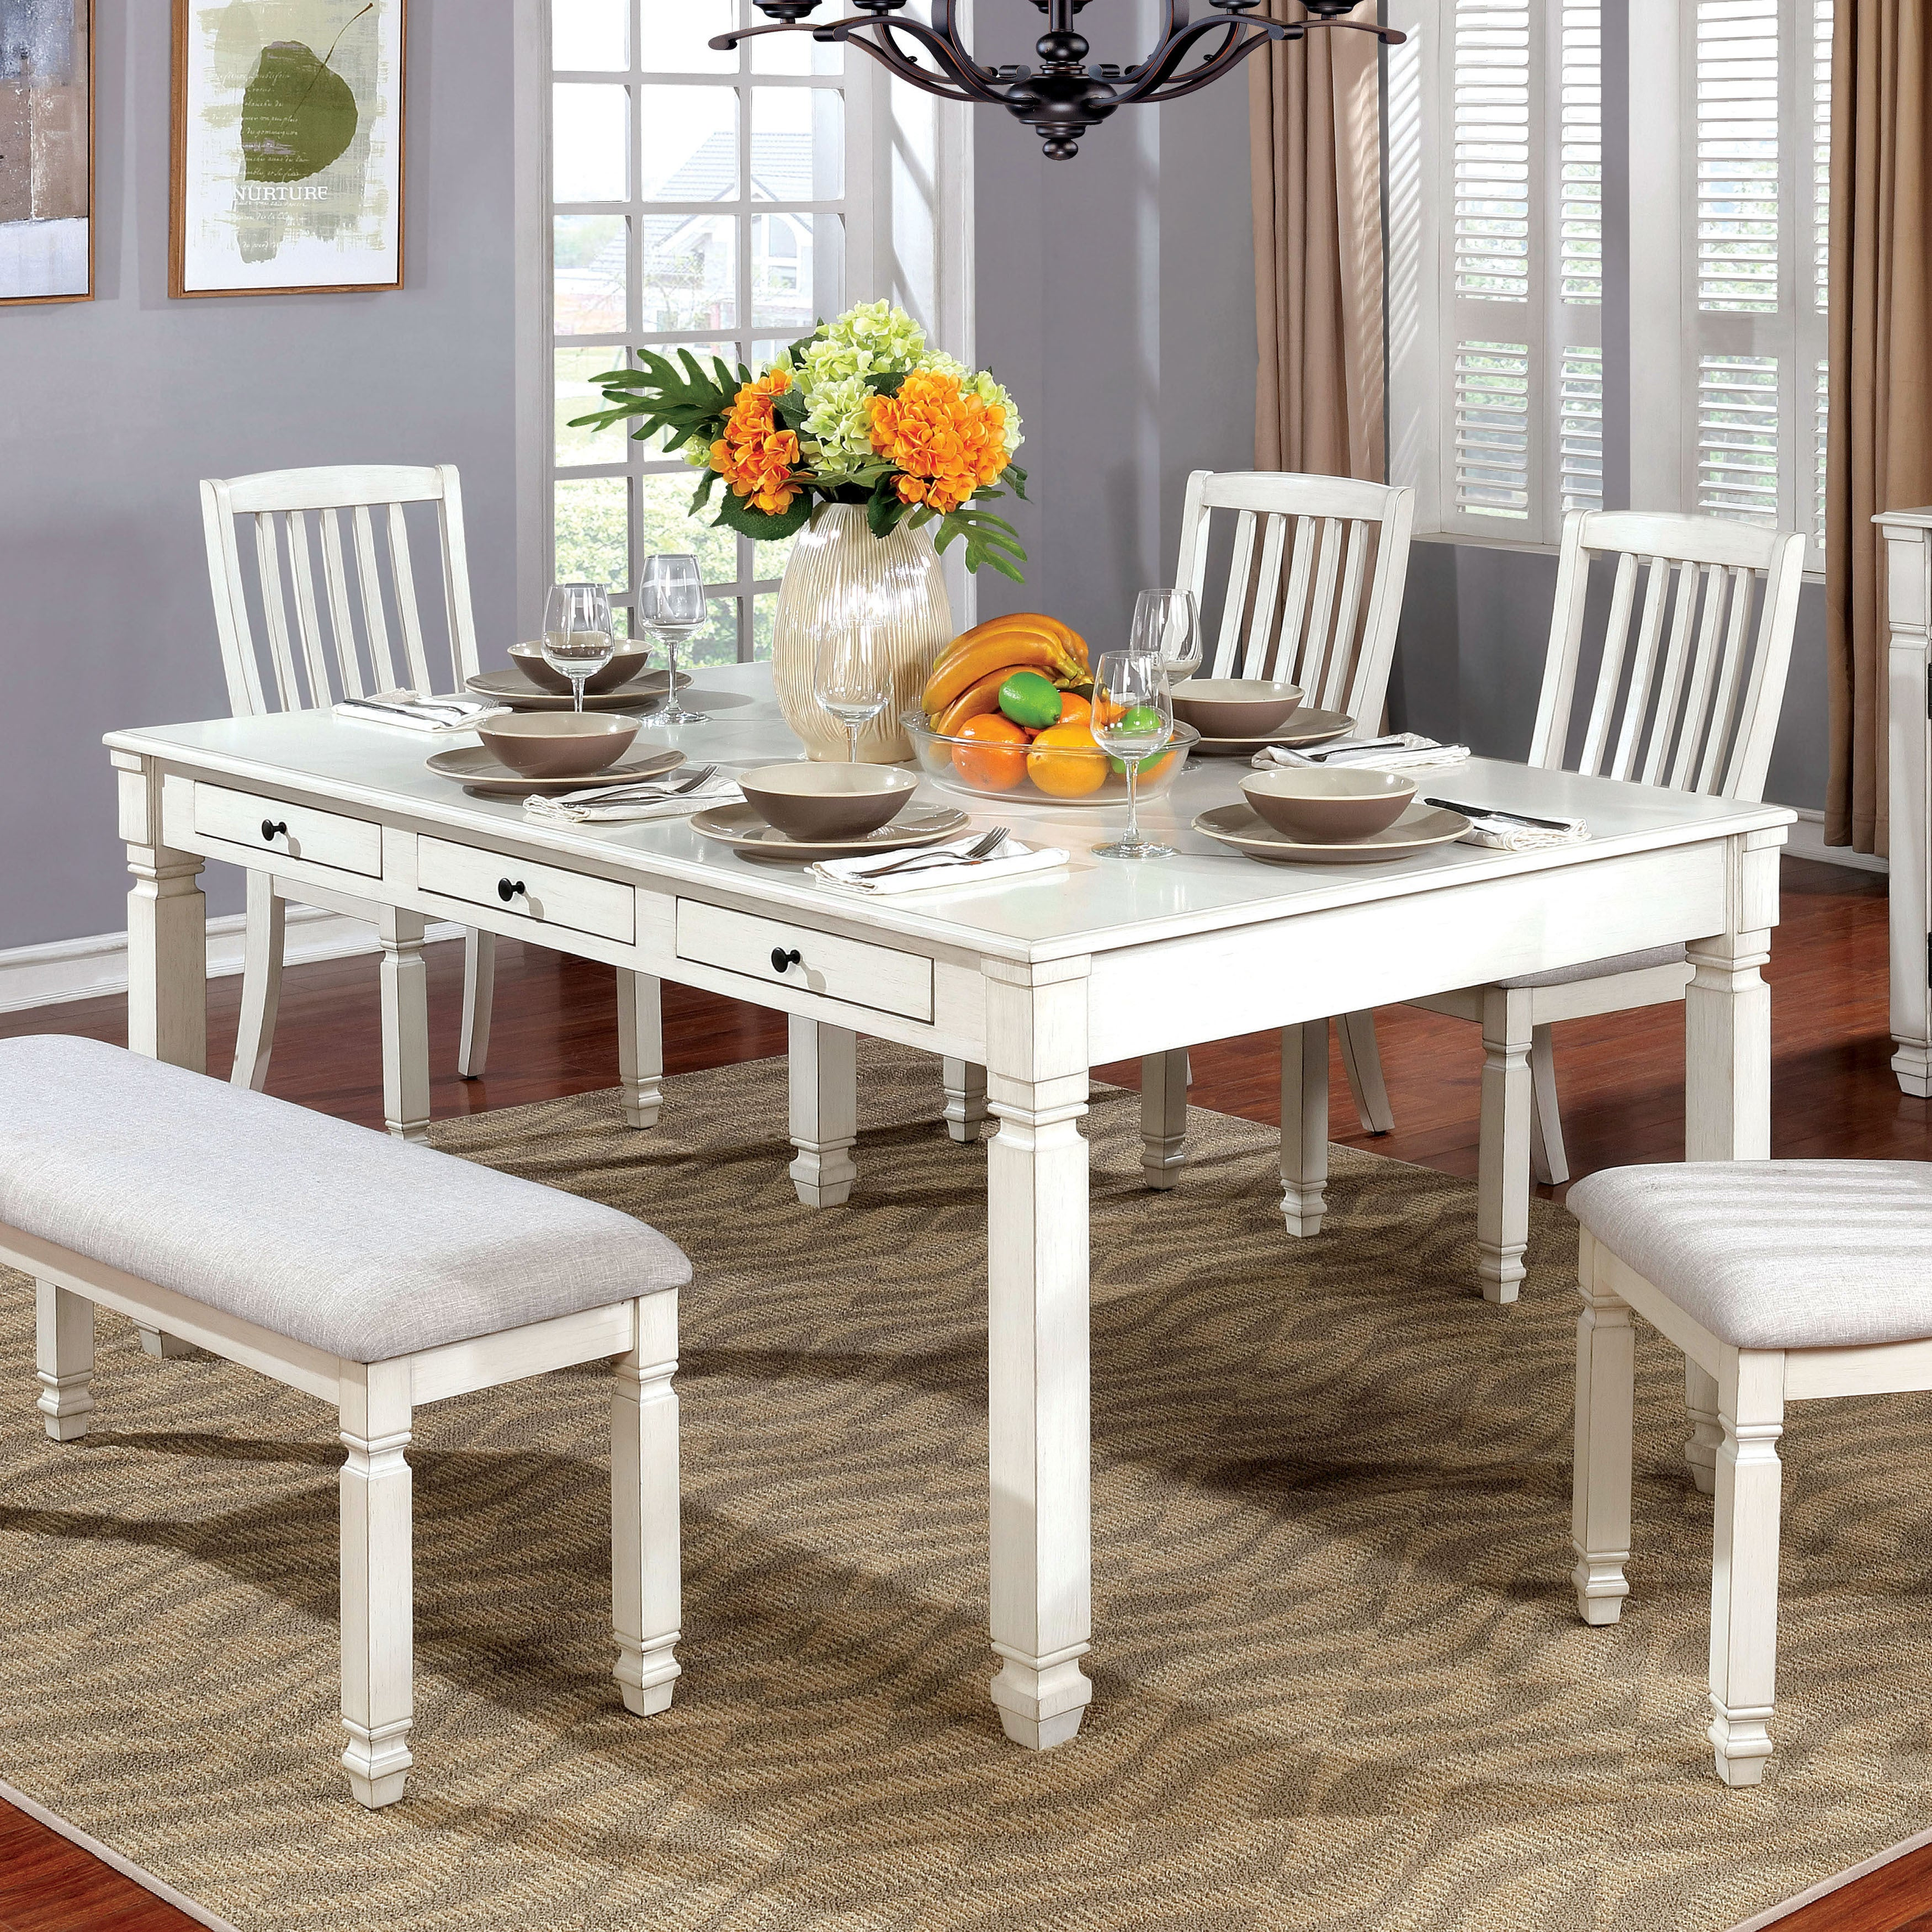 Shop furniture of america aubrie antique white wood transitional storage drawer dining table on sale free shipping today overstock com 19826023